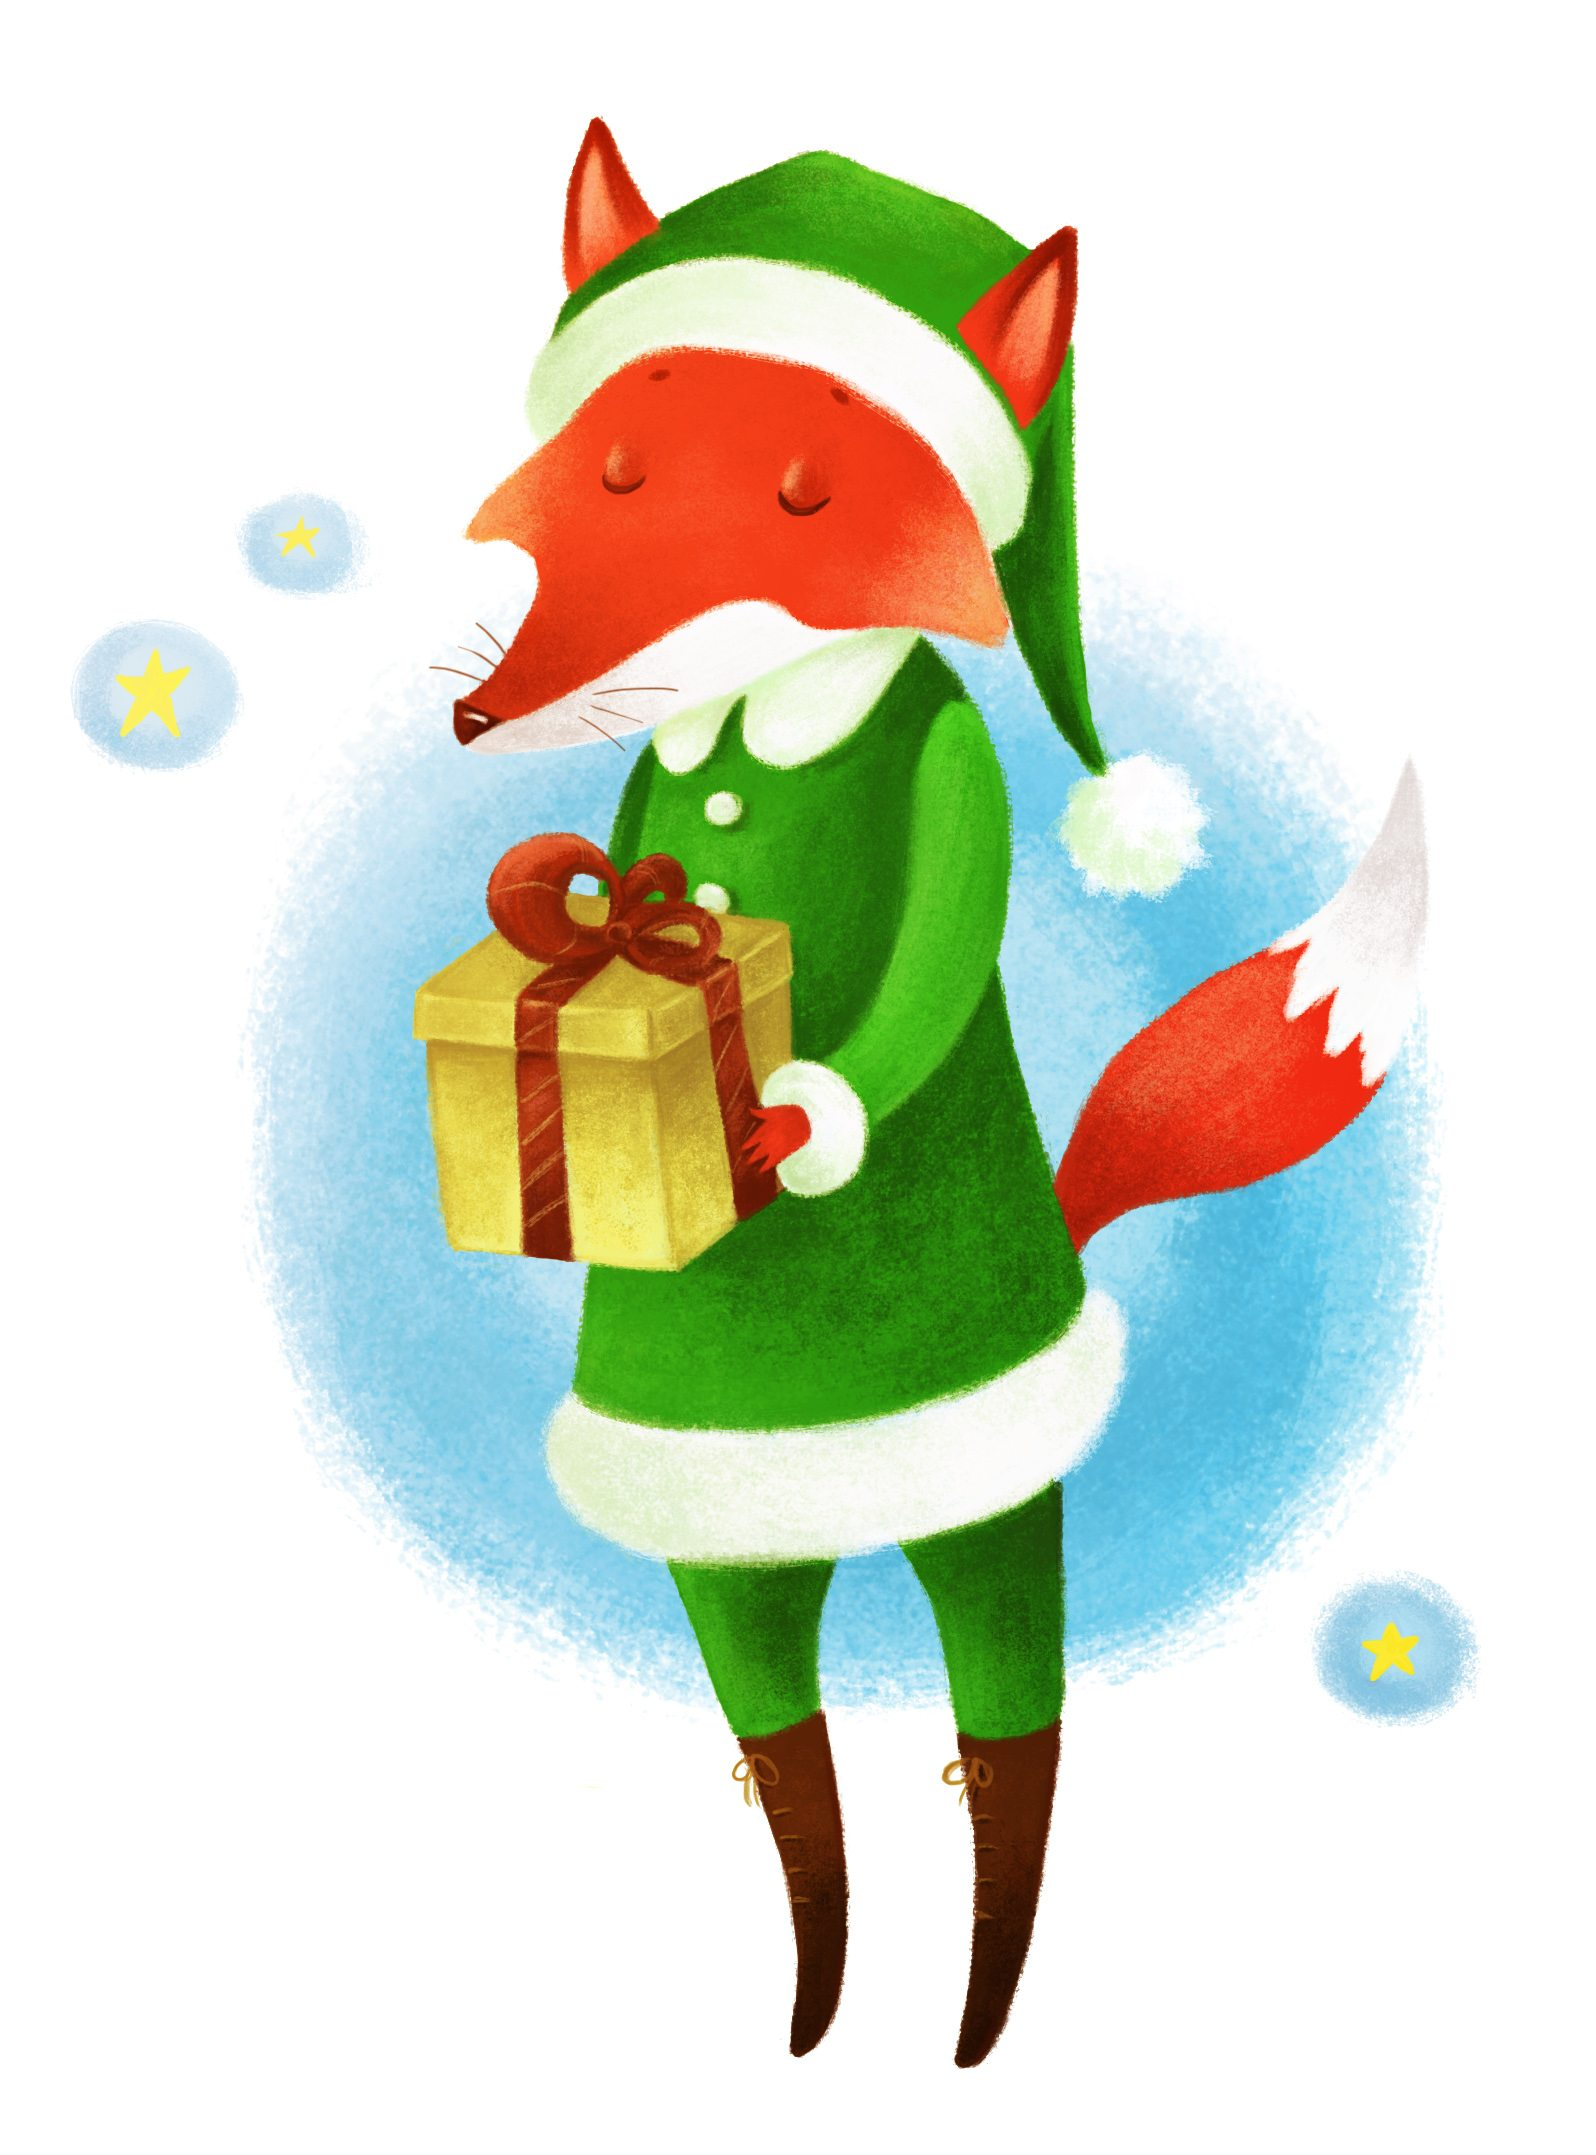 Mr Fox Digital Illustration by Orgueil